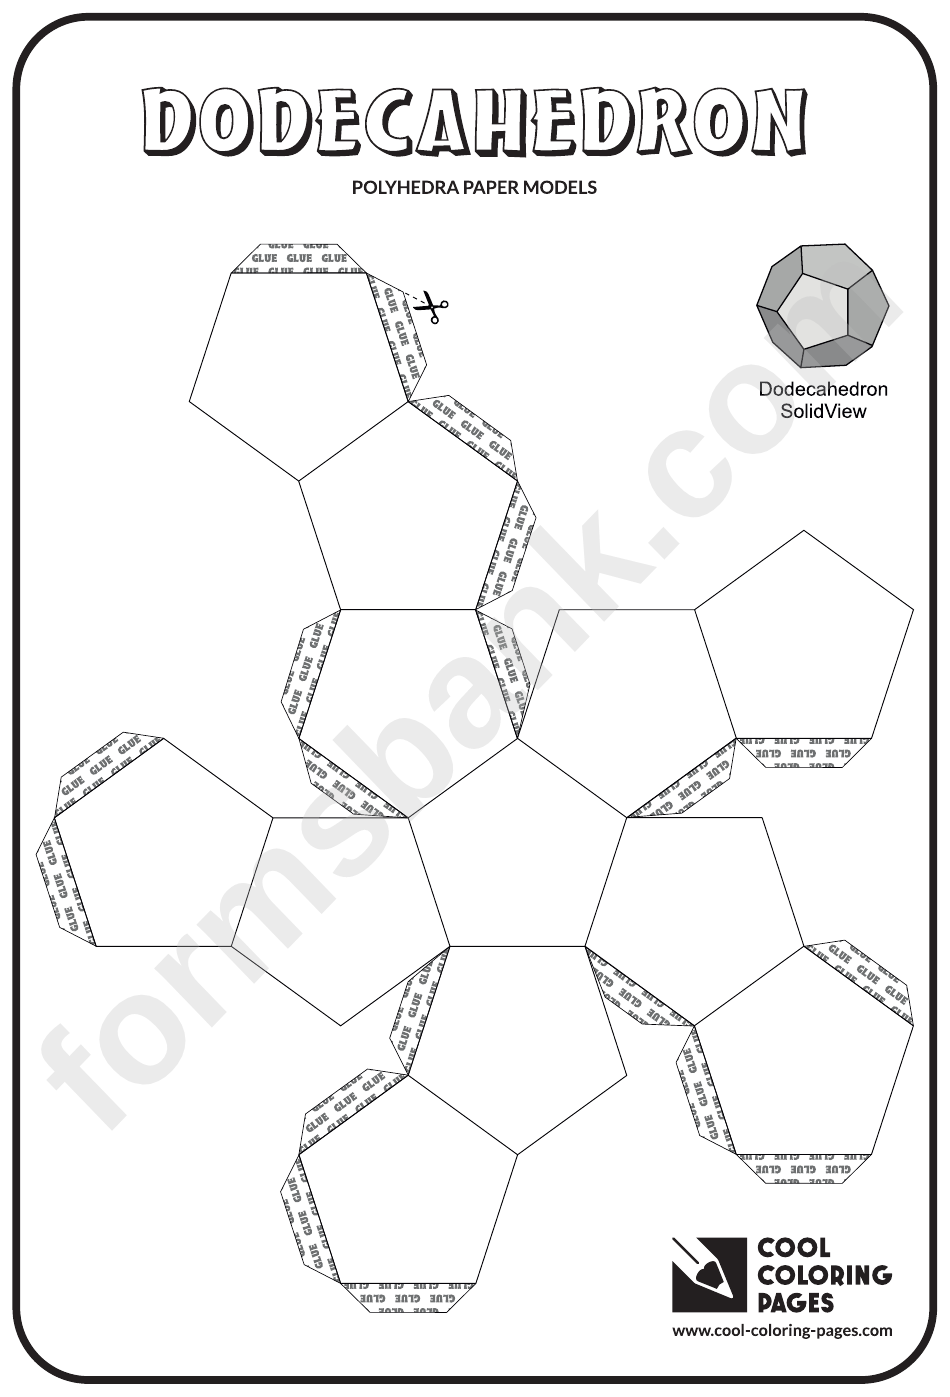 Dodecahedron Template And Coloring Sheet printable pdf download